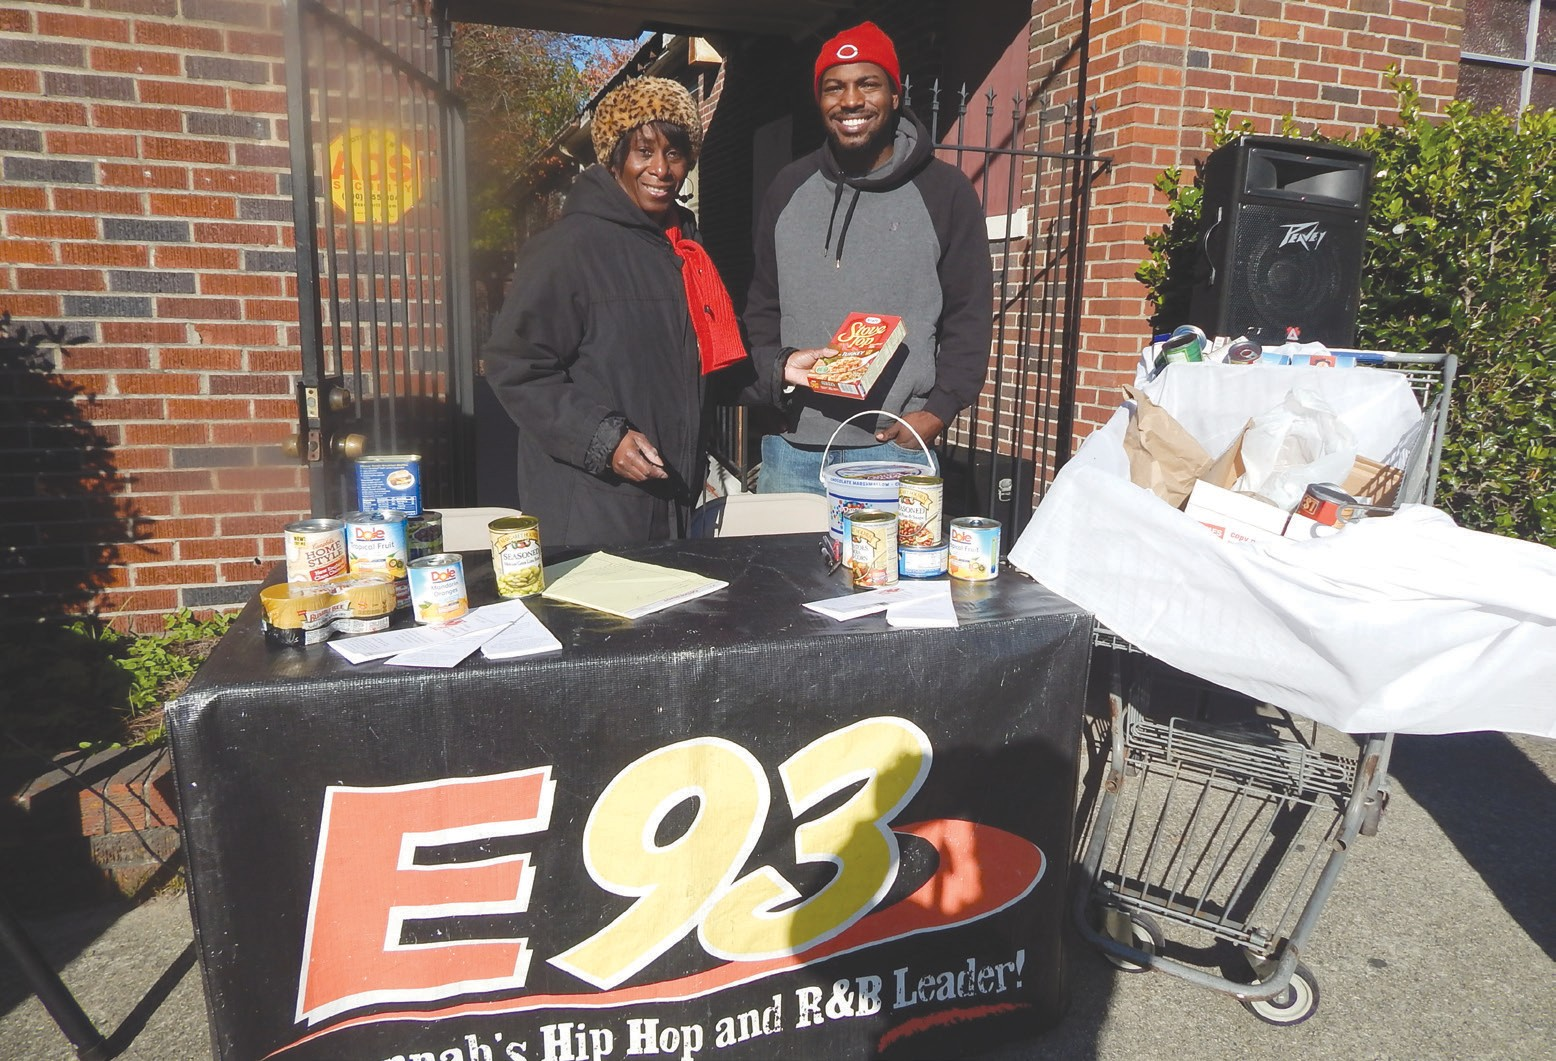 Tammy Mixon, Wesley Community Center Executive Director and Aaron of E93